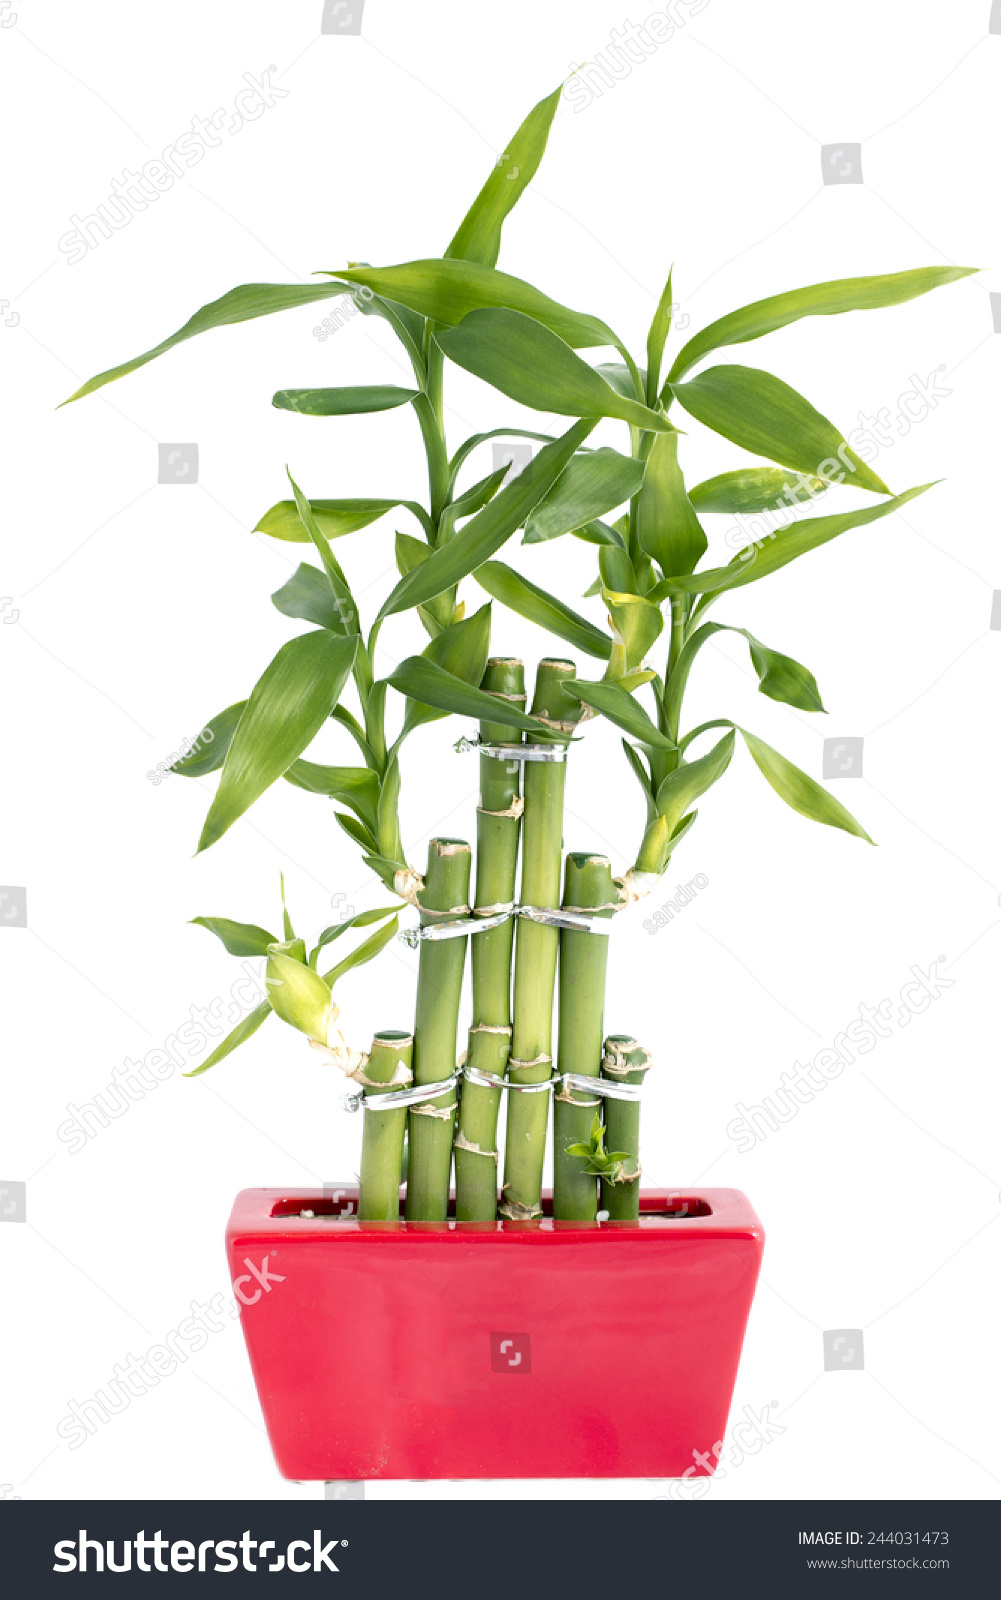 how to get bamboo out of pot